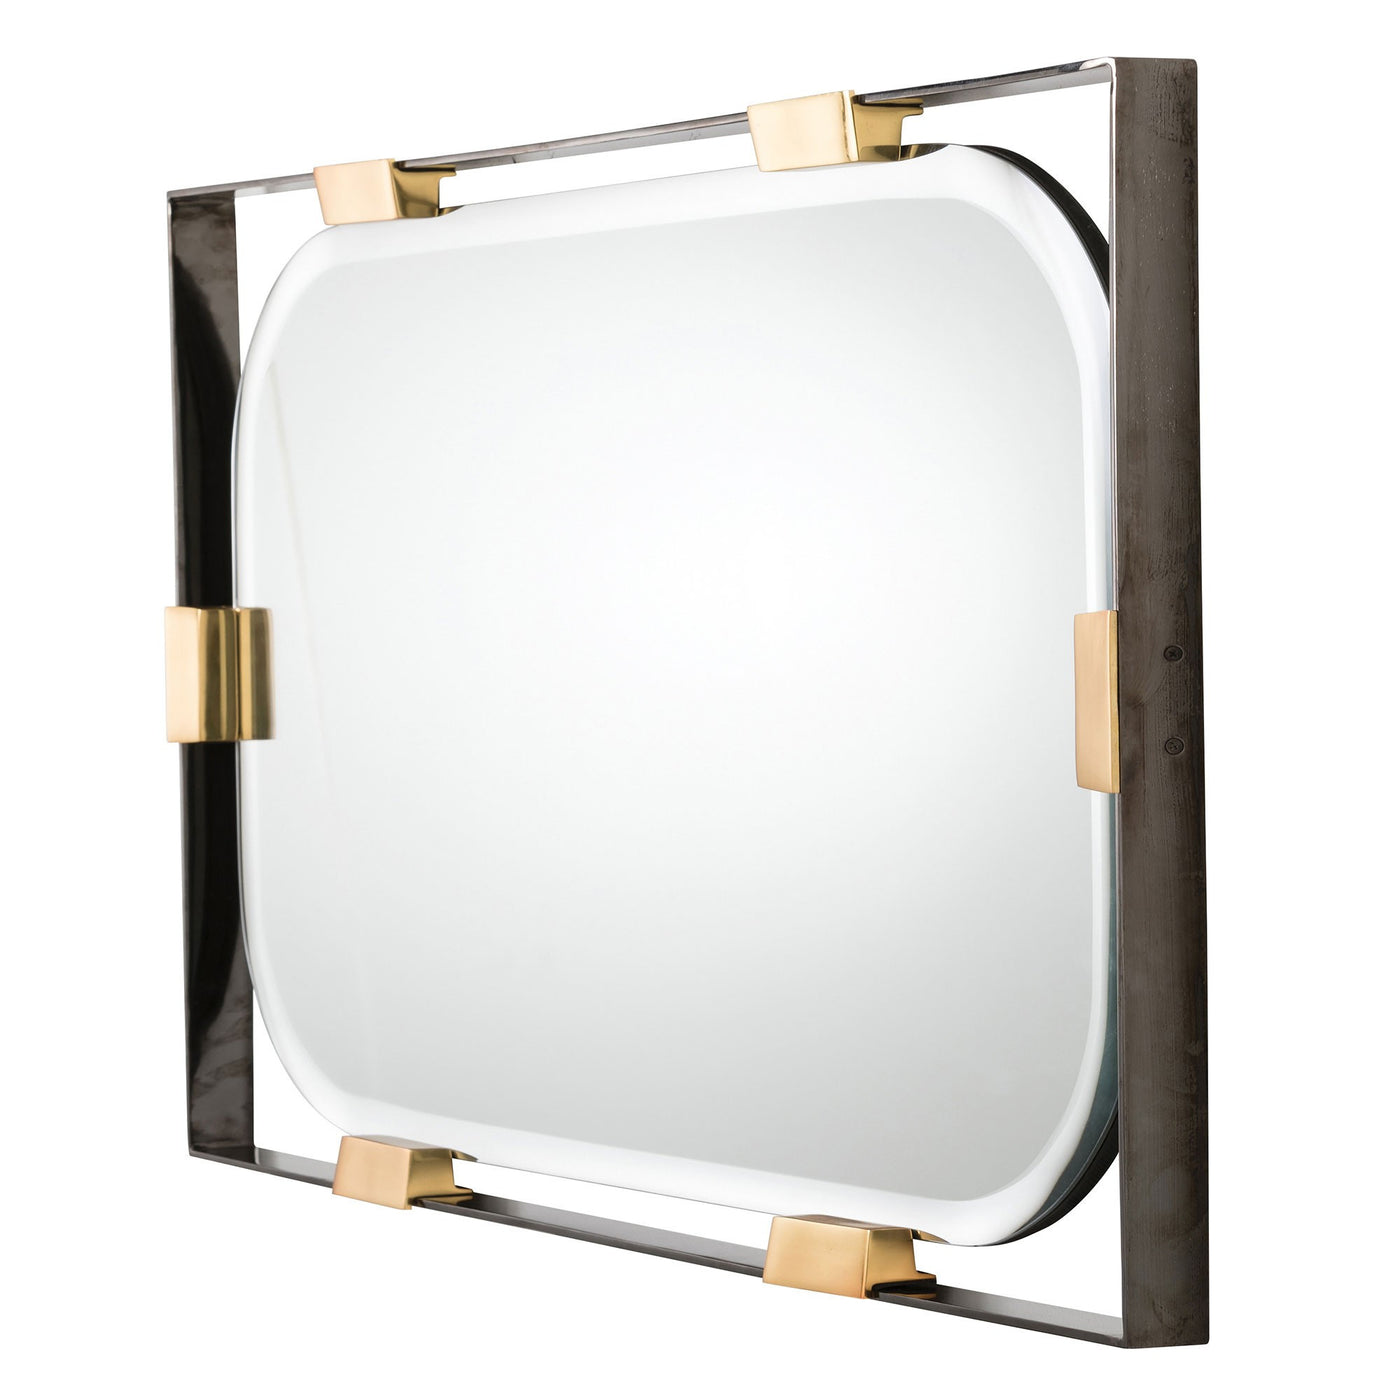 arteriors home frankie rectangular mirror DJ2049 mirrors, wall mirrors, long wall mirrors, modern bathroom mirrors, large wall mirrors, bedroom mirrors, unique mirrors, bathroom wall mirrors, horizontal, side view